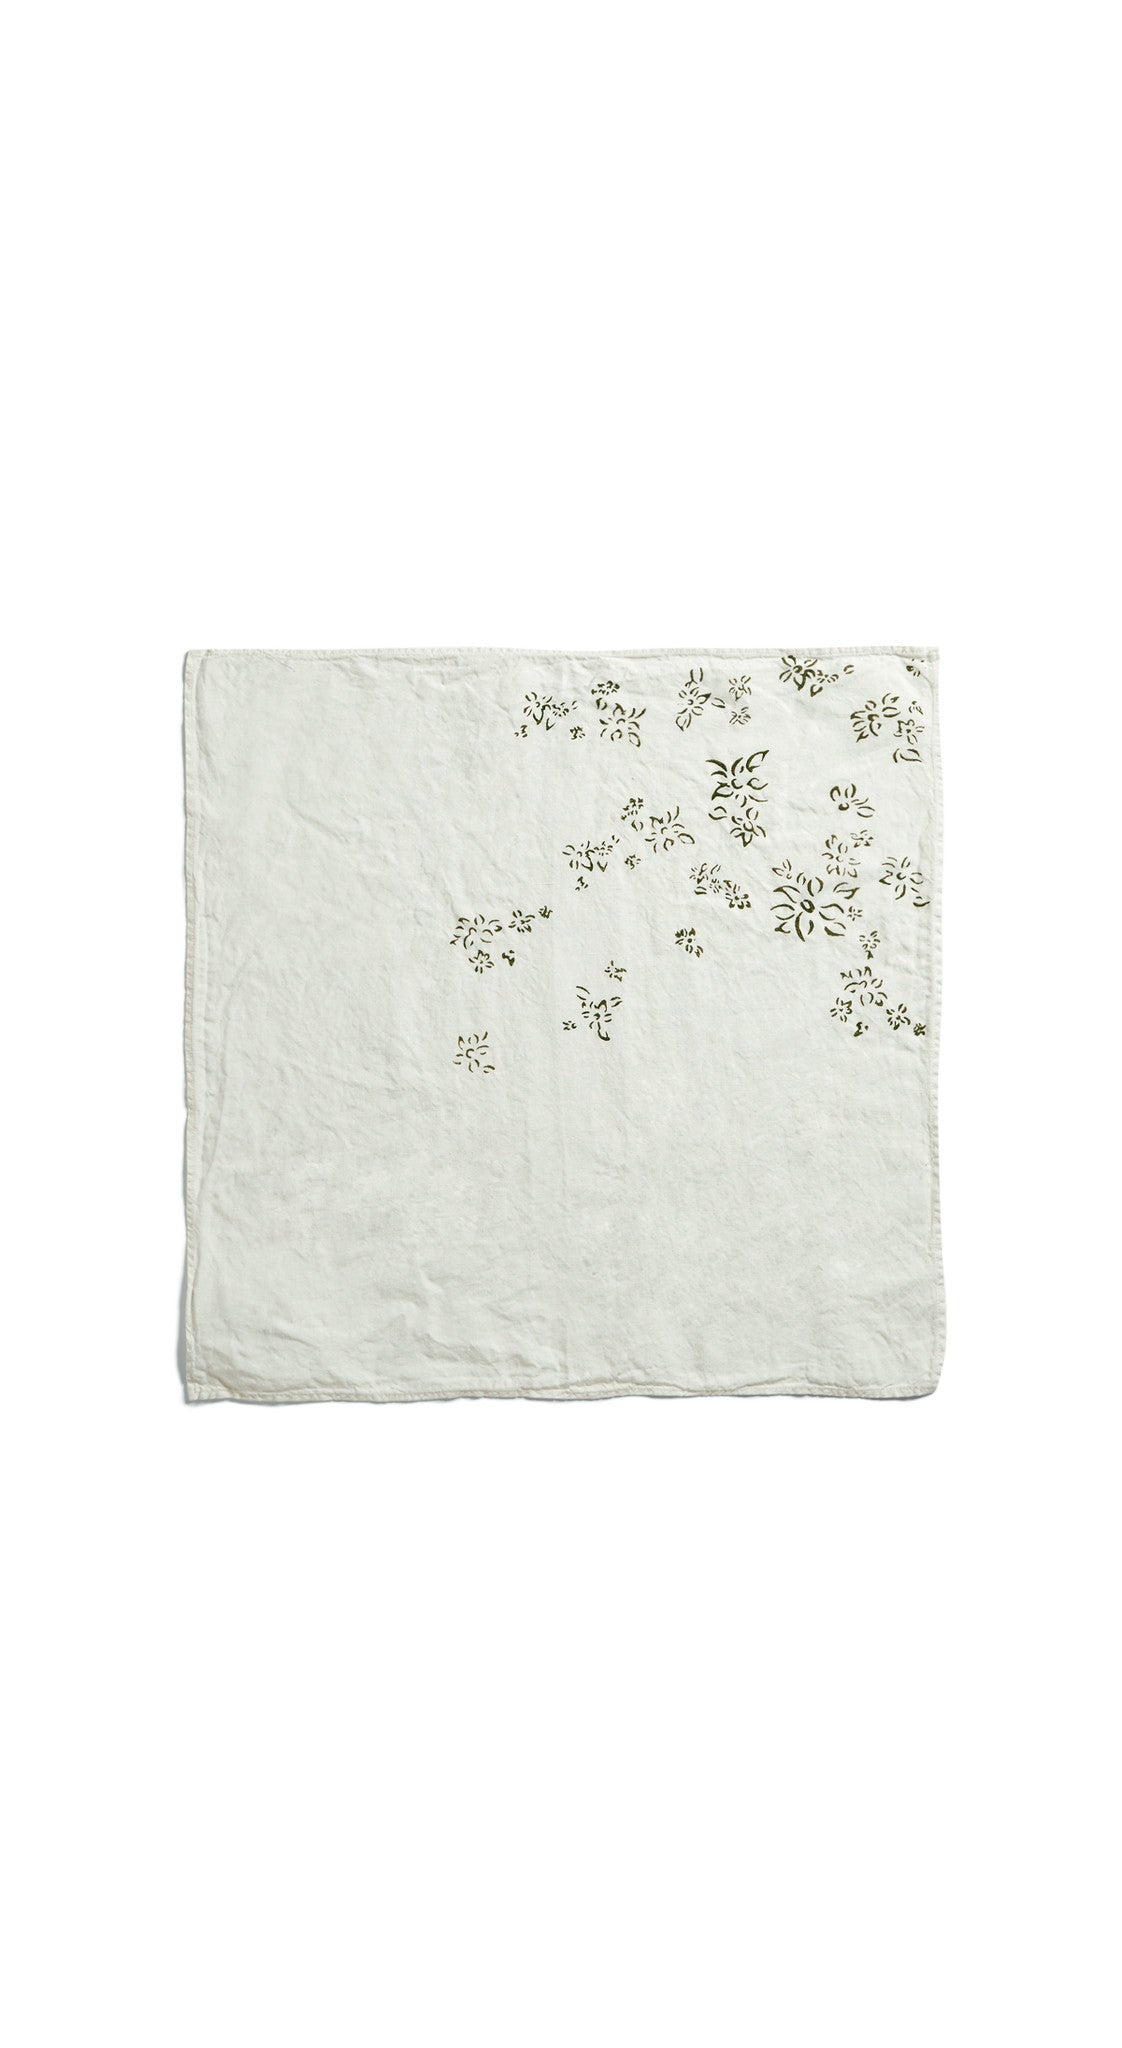 Bernadette's Falling Flower Linen Napkin in Avocado Green